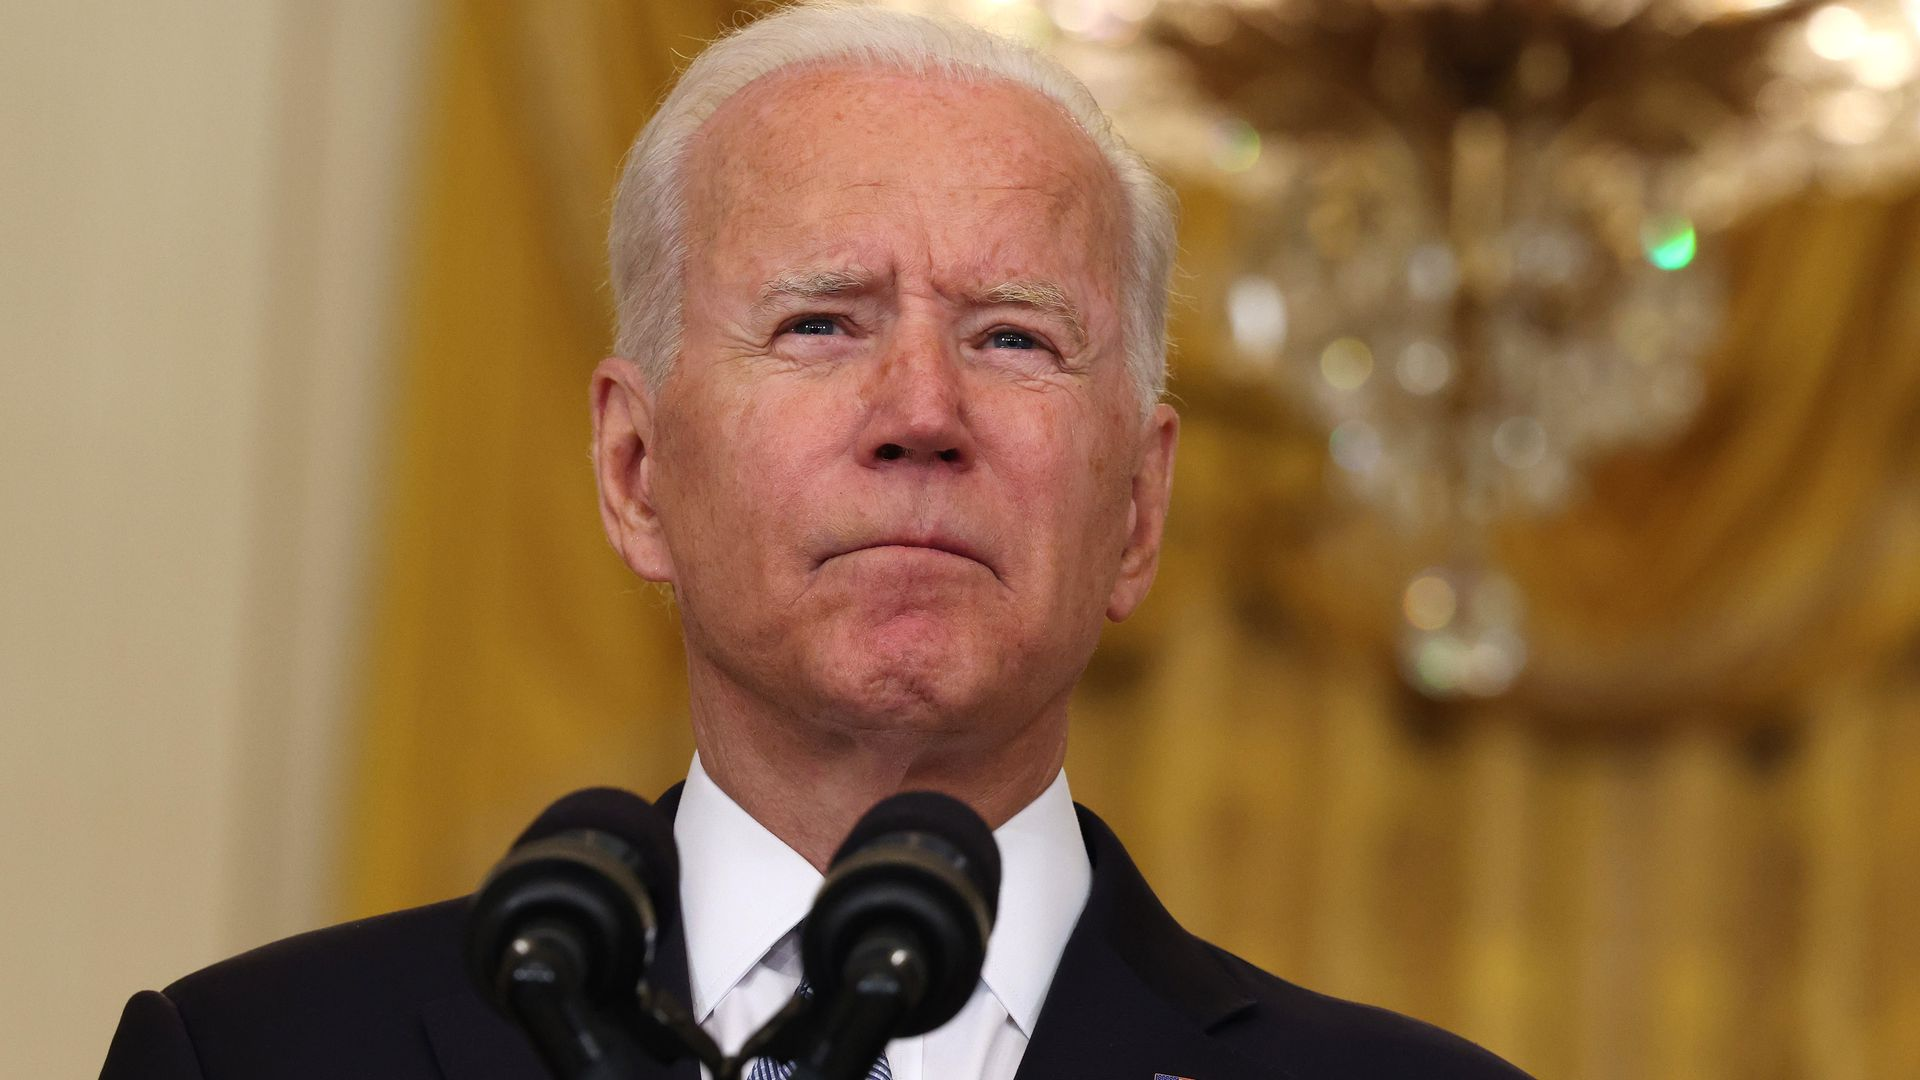 AXIOS – Biden's average approval rating drops below 50% for first time